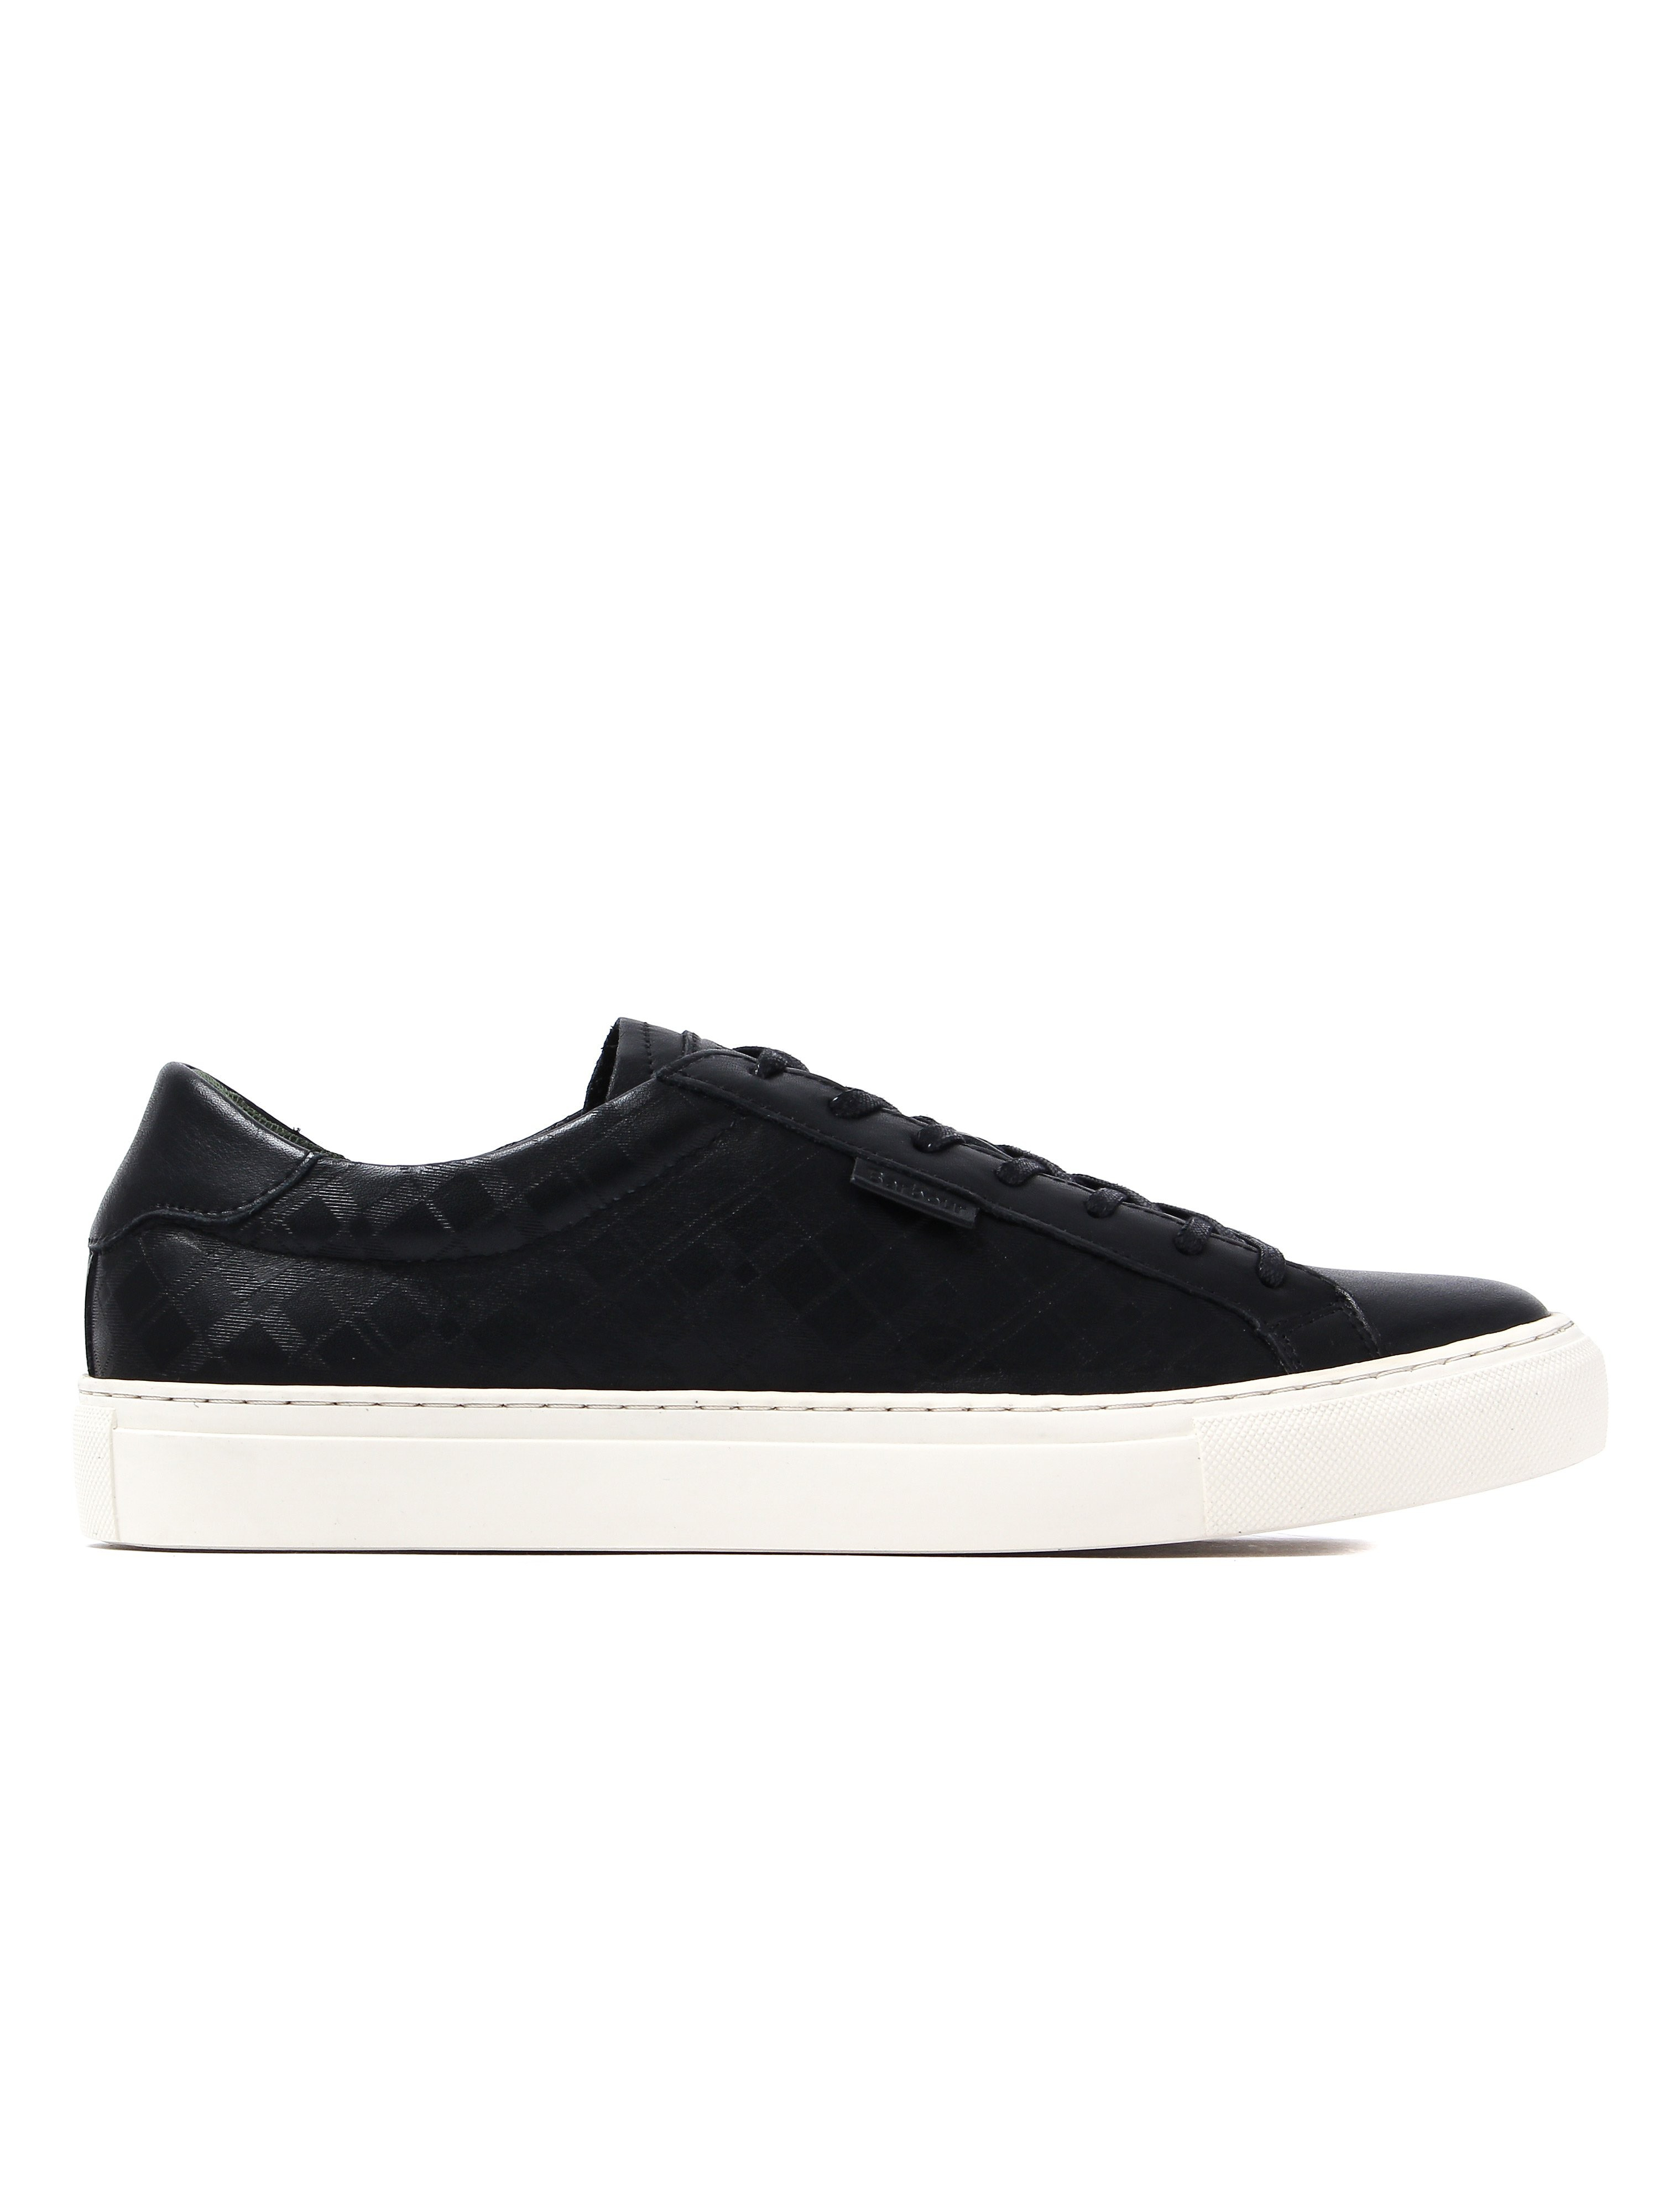 Barbour Men's Tynemouth Trainers - Black Leather